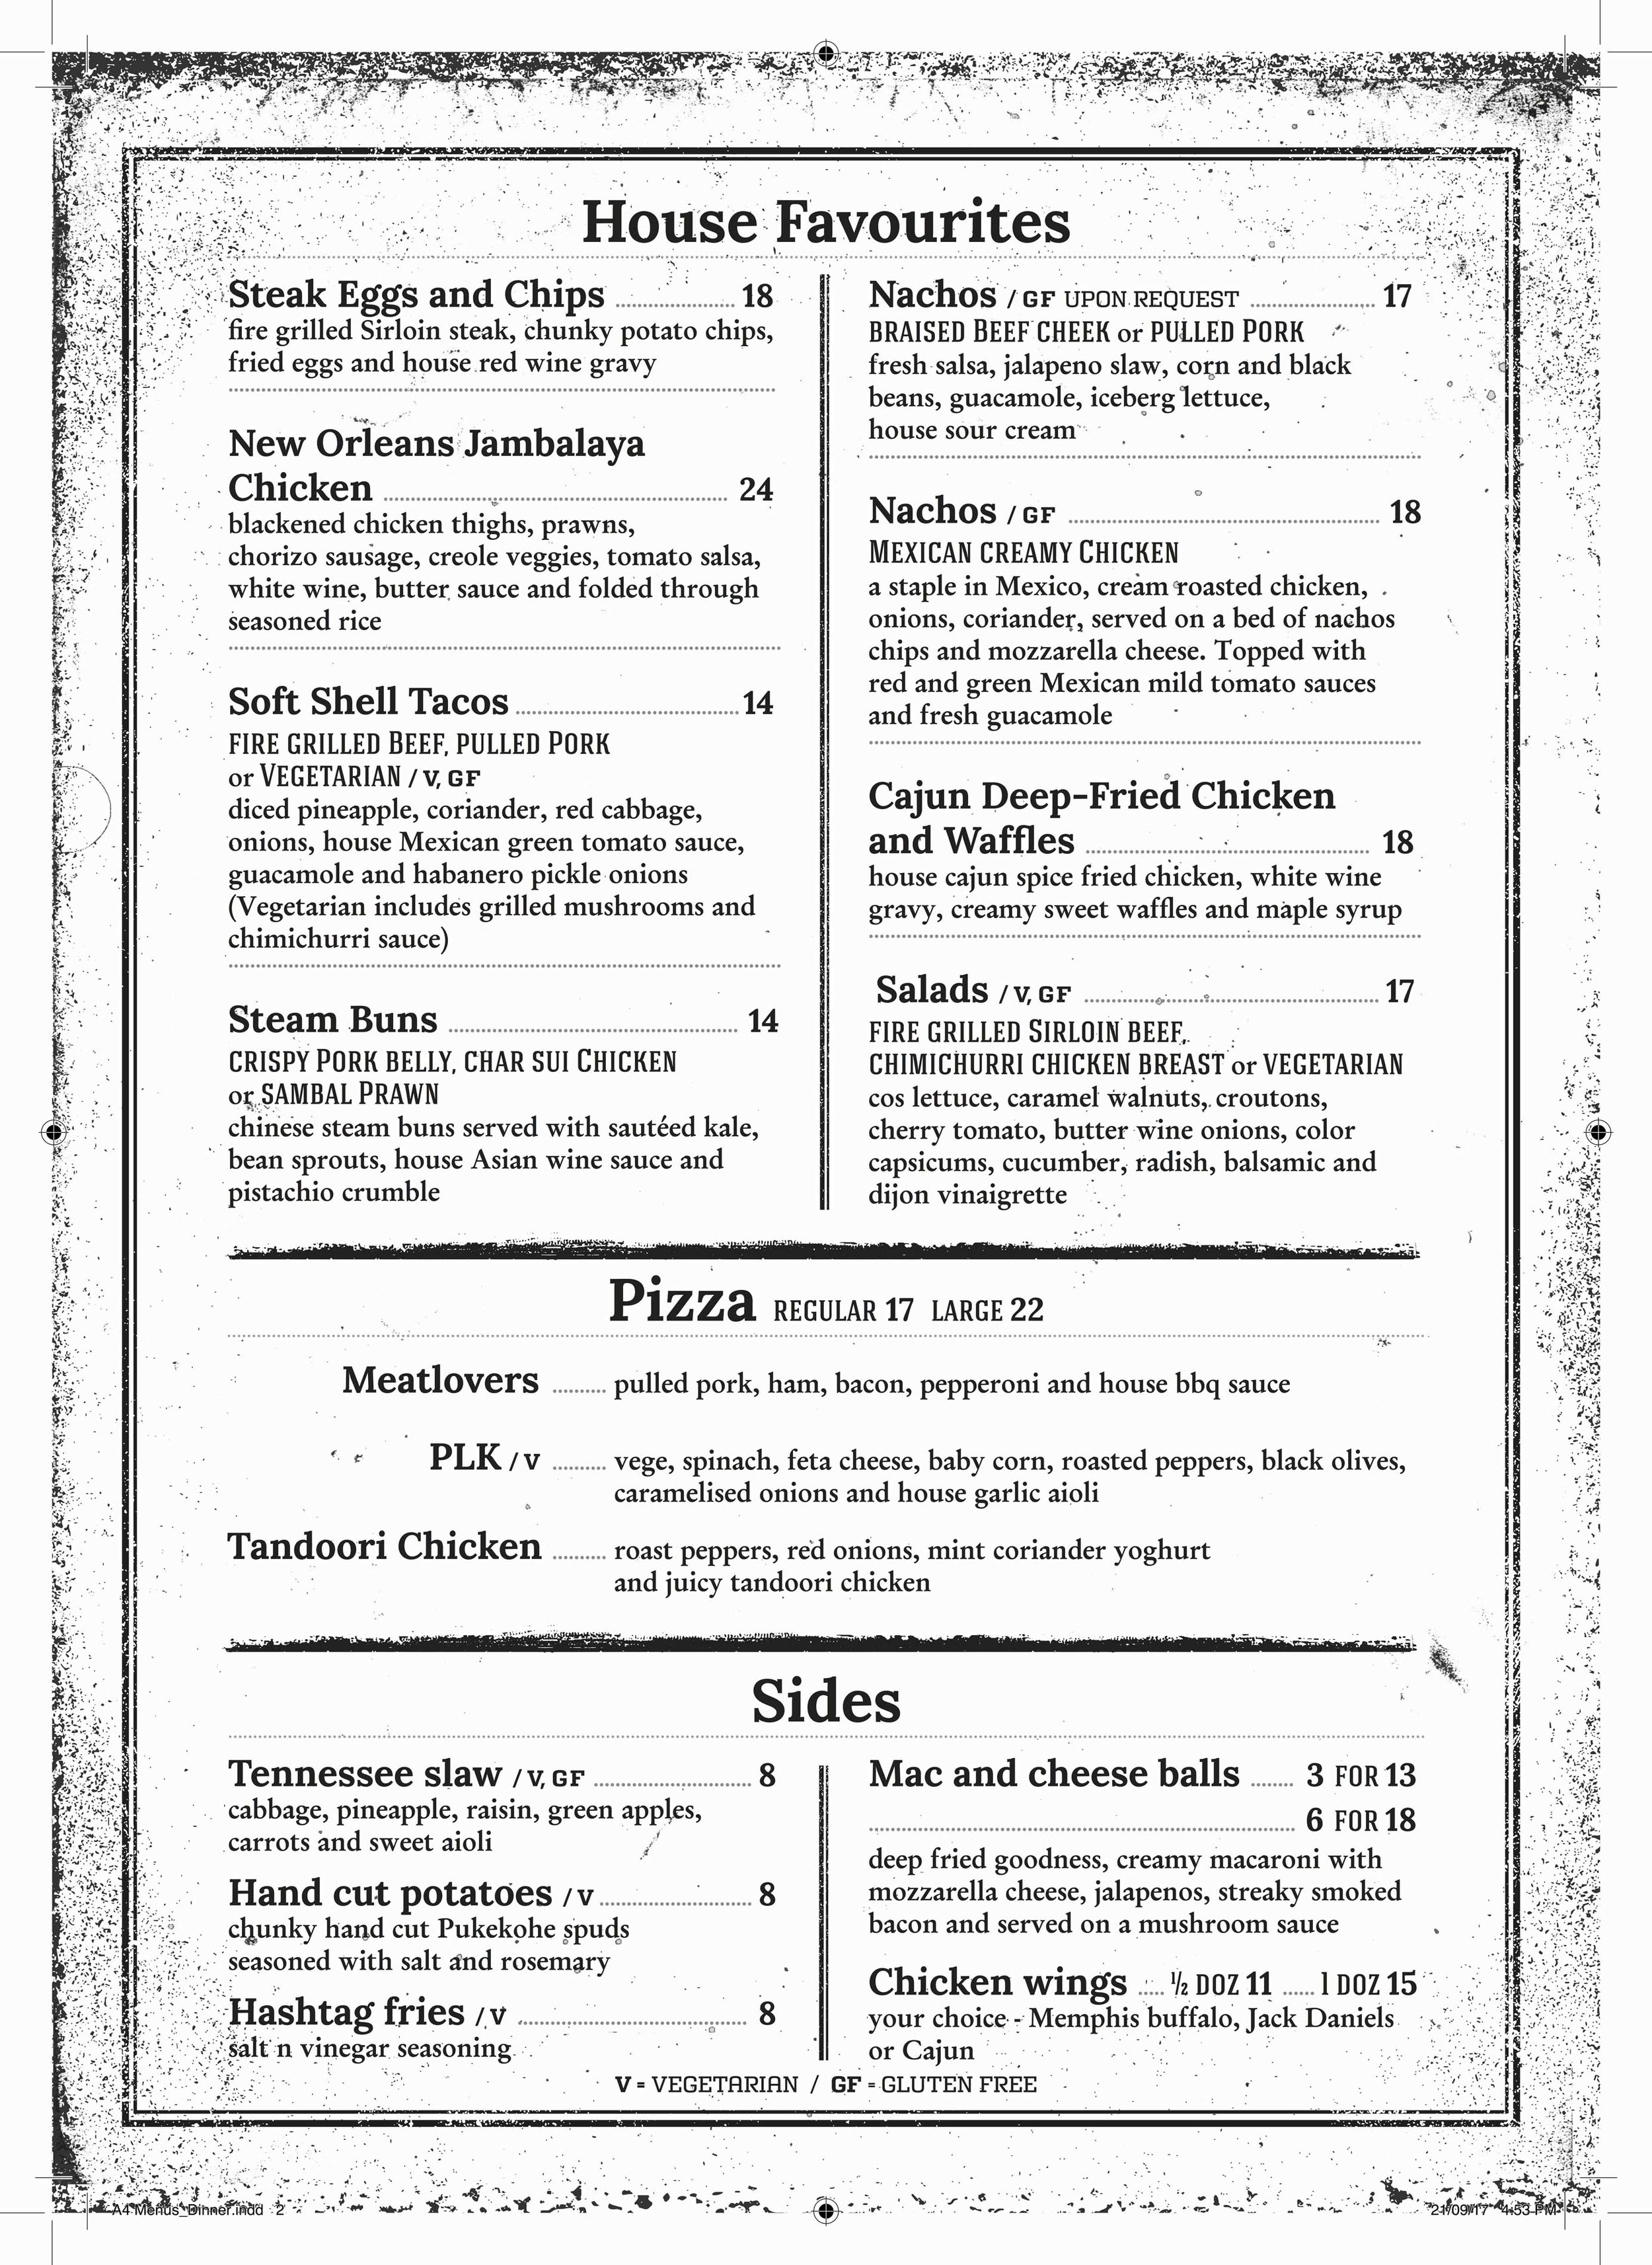 A4 Menus_Dinner_update_4print House Favs.jpg